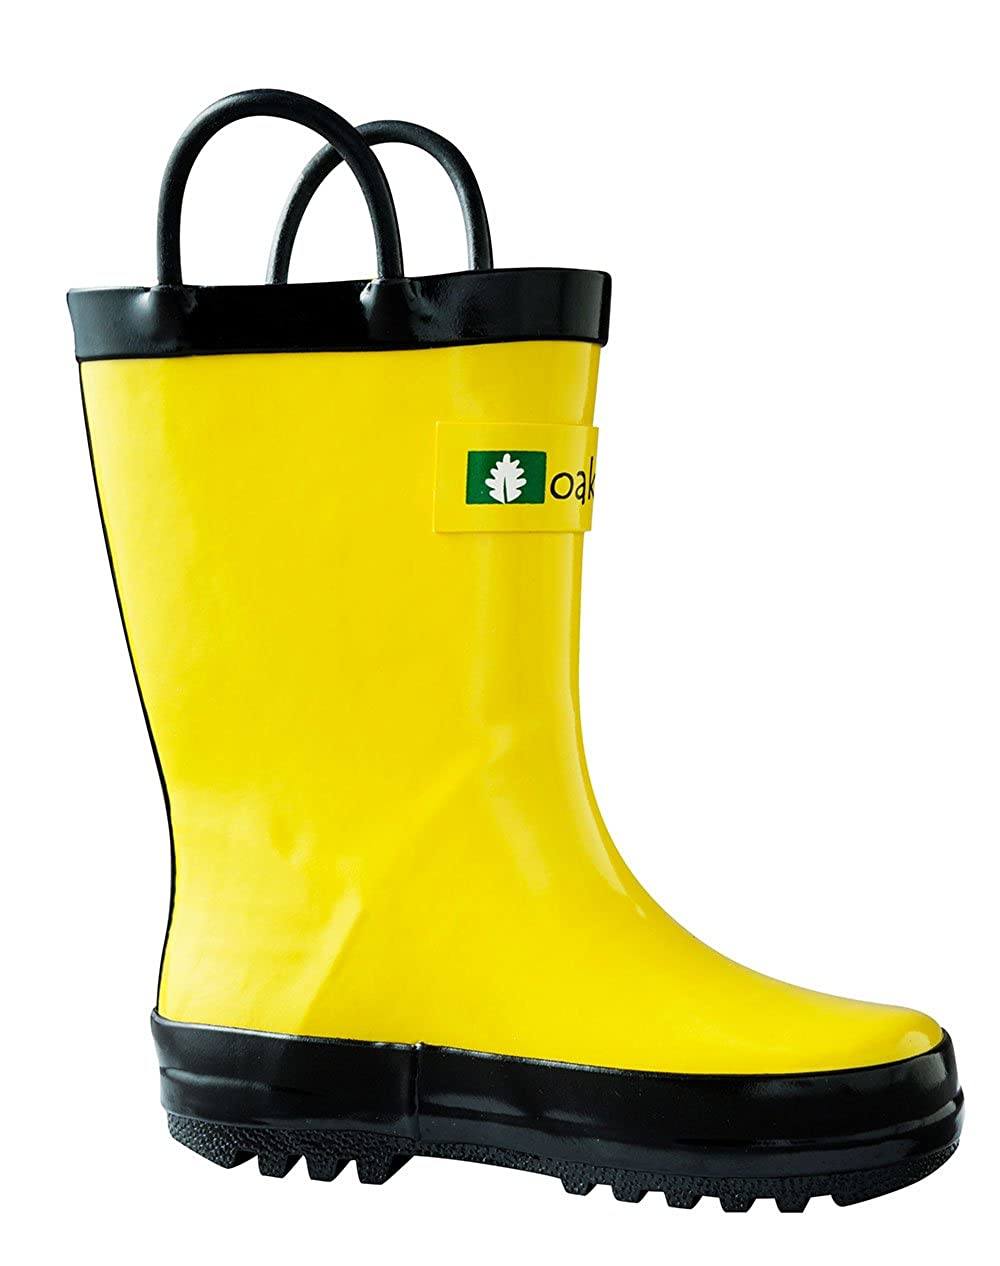 ff89b9b8b7dbc OAKI Kids Waterproof Rain Boots with Easy-On Handles, Yellow, 4T US Toddler